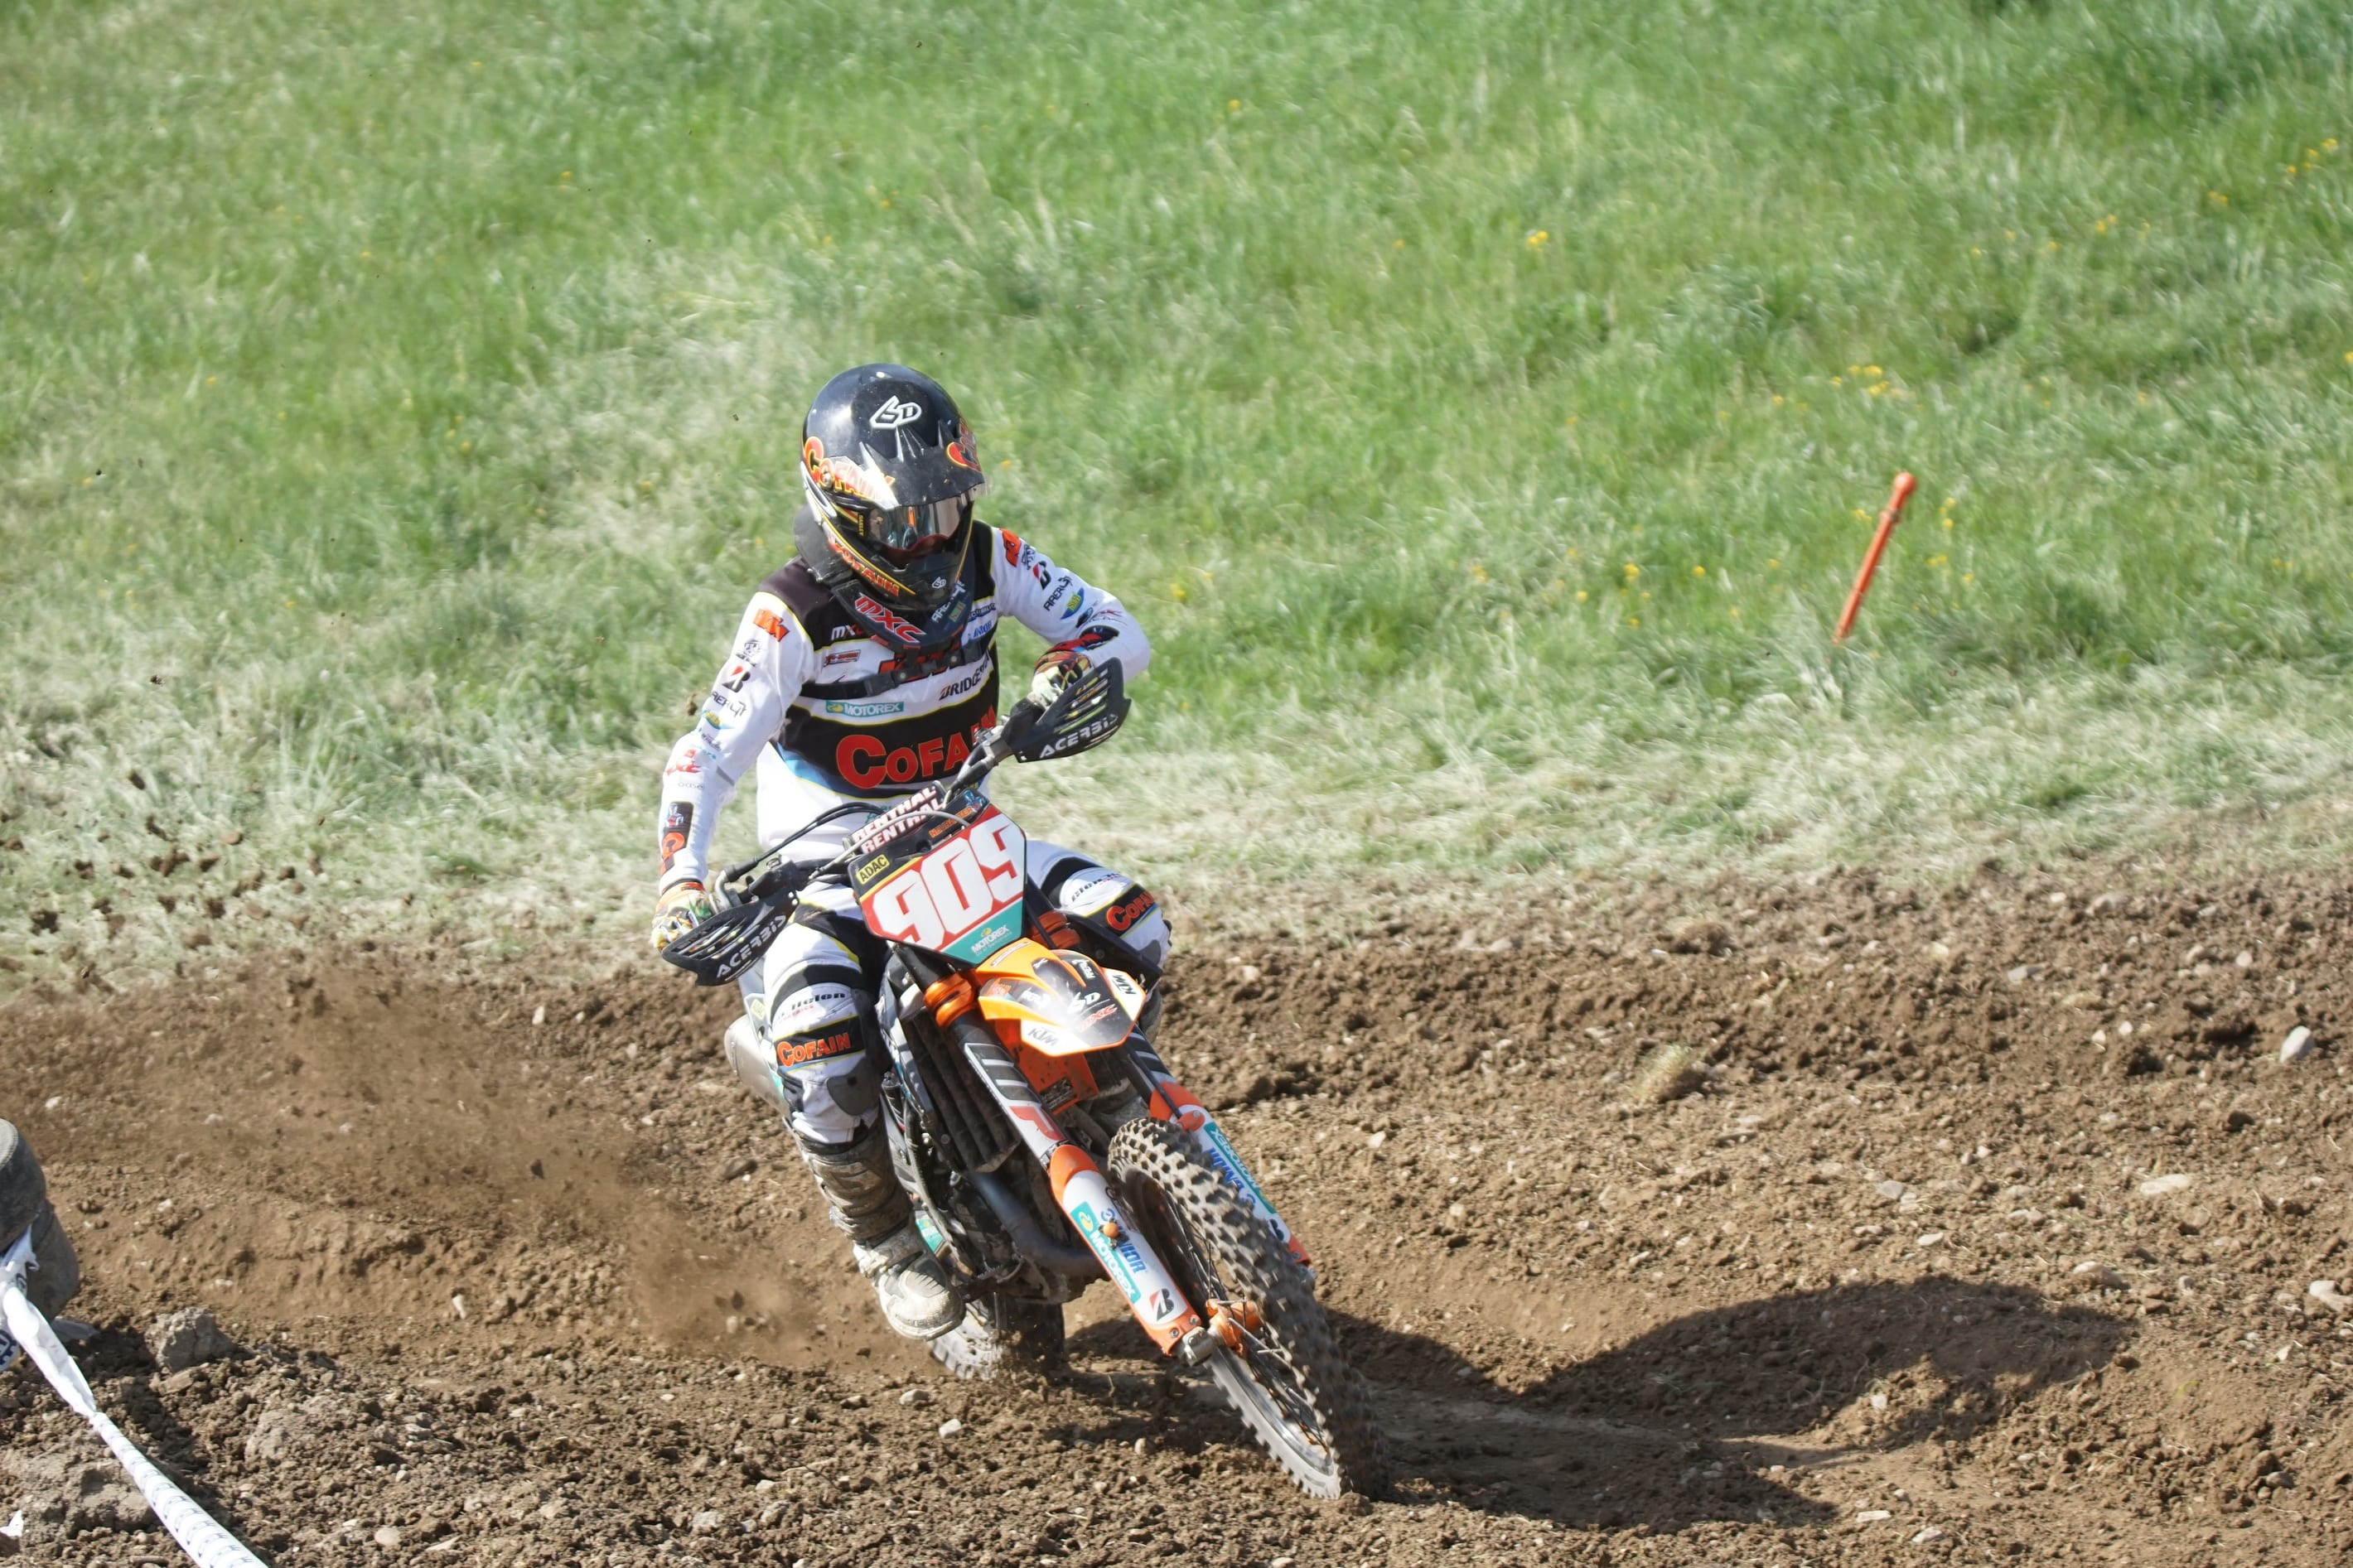 DSC 809_Moto Cross Sittendorf Teil1 am 29.04.2018